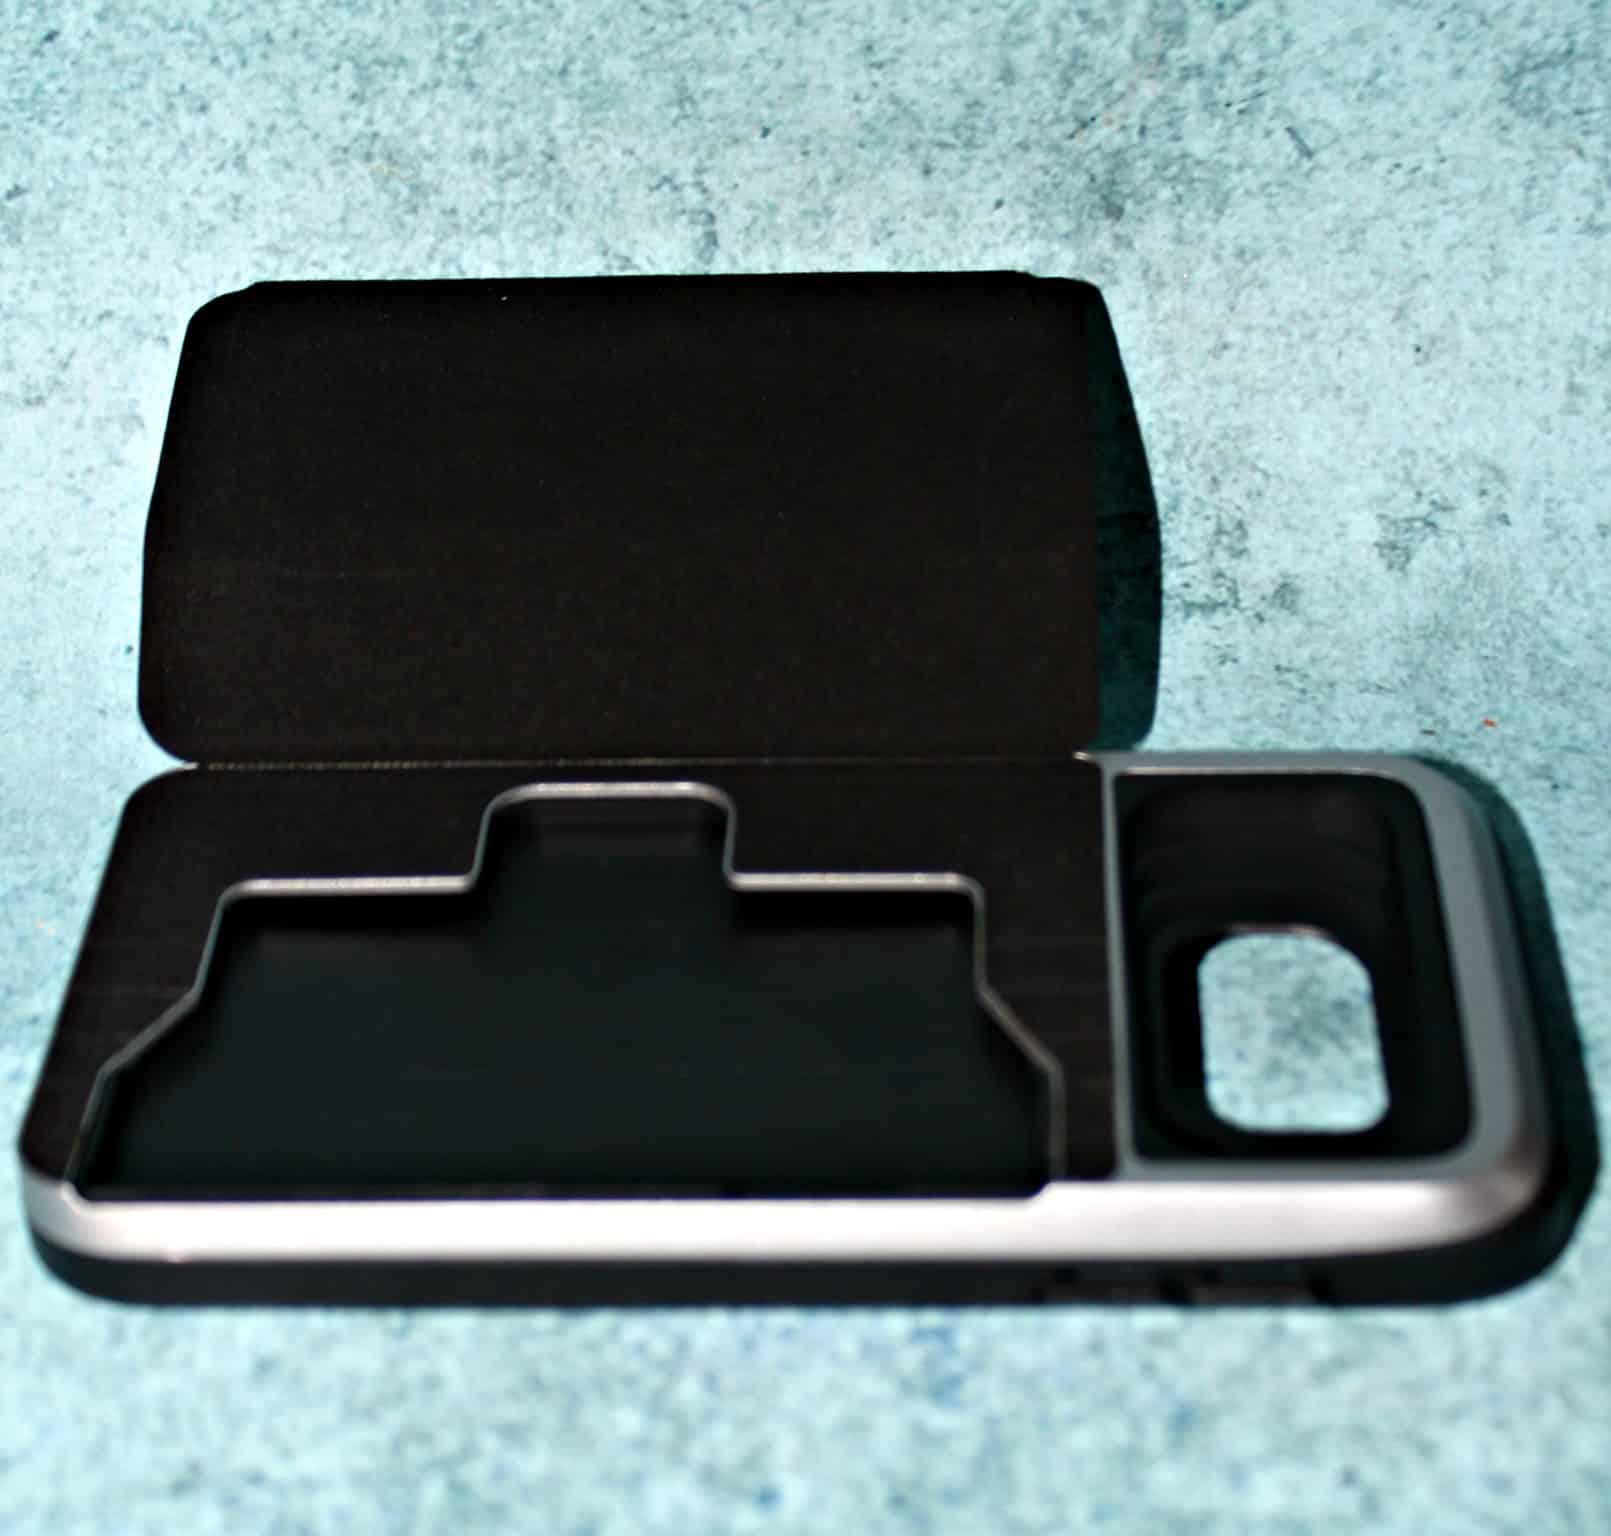 The Vena vCommute Smartphone Case